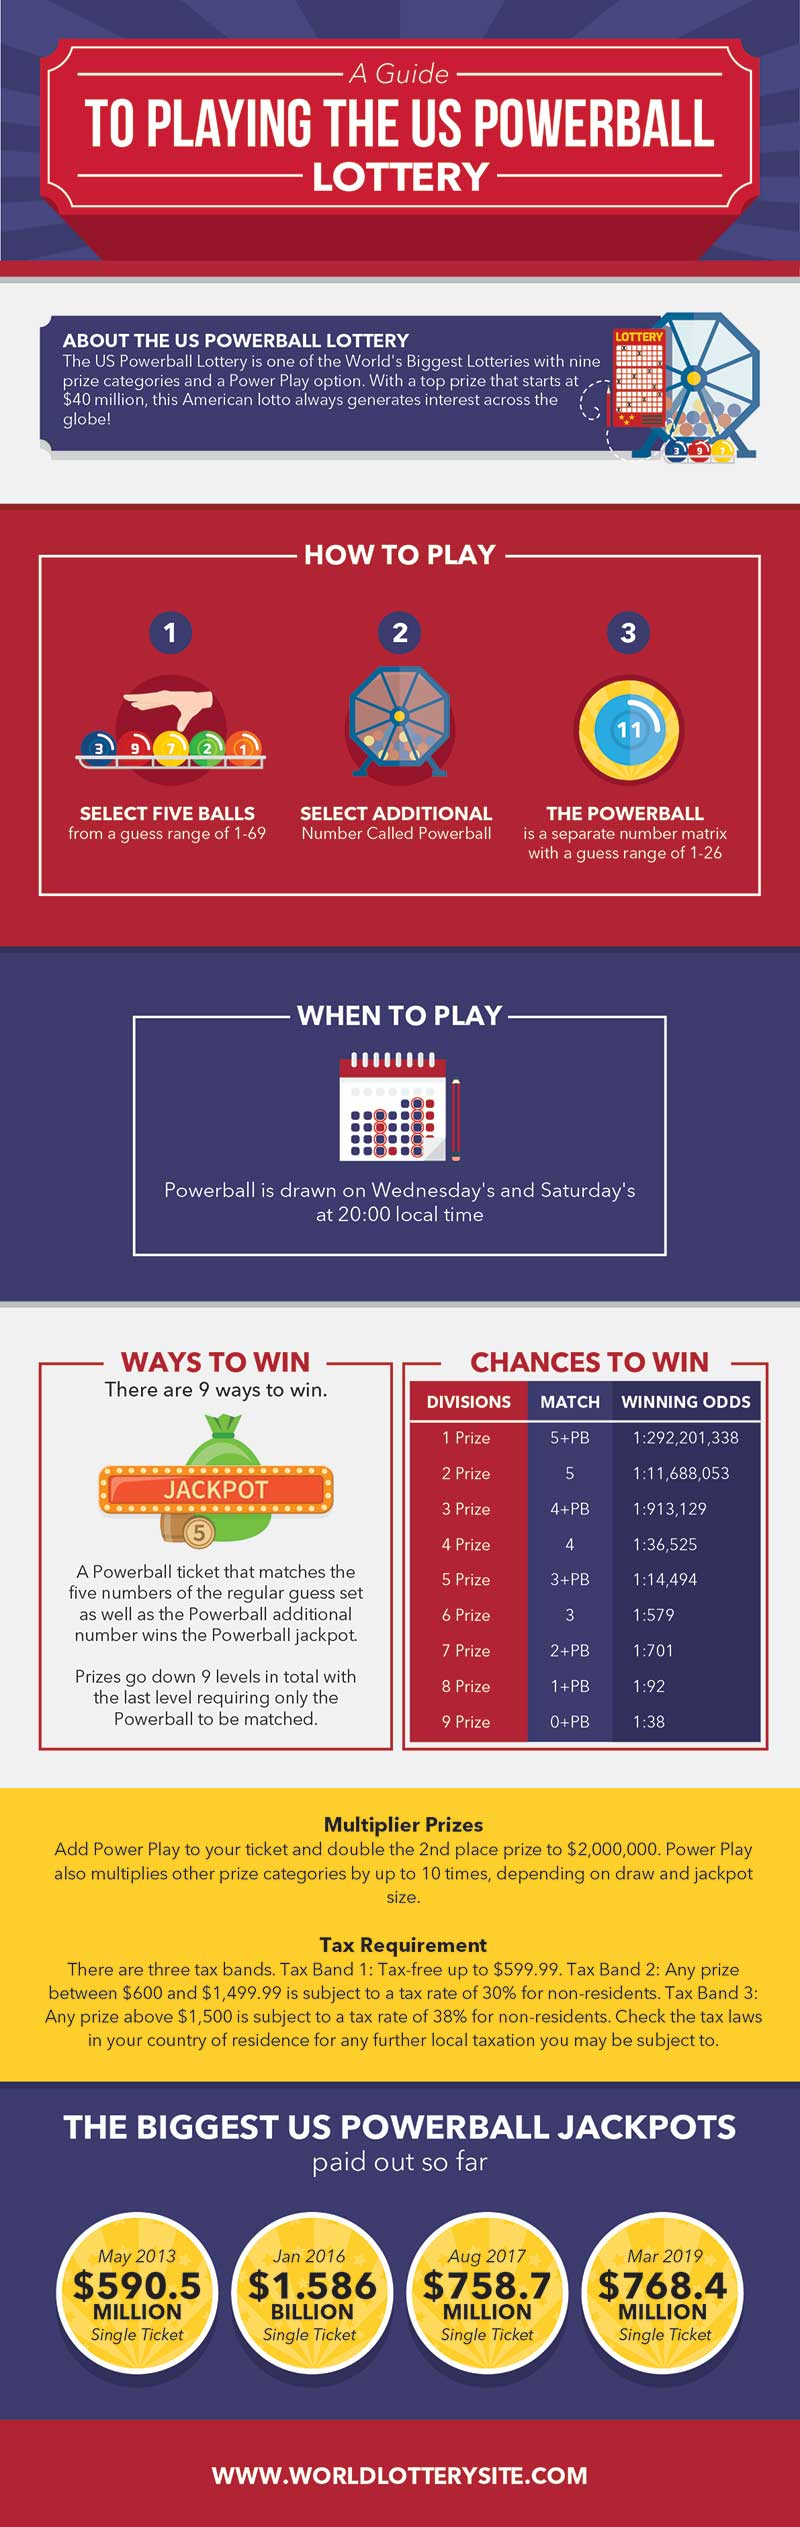 An Infographic Guide to Playing the US Powerball Lottery